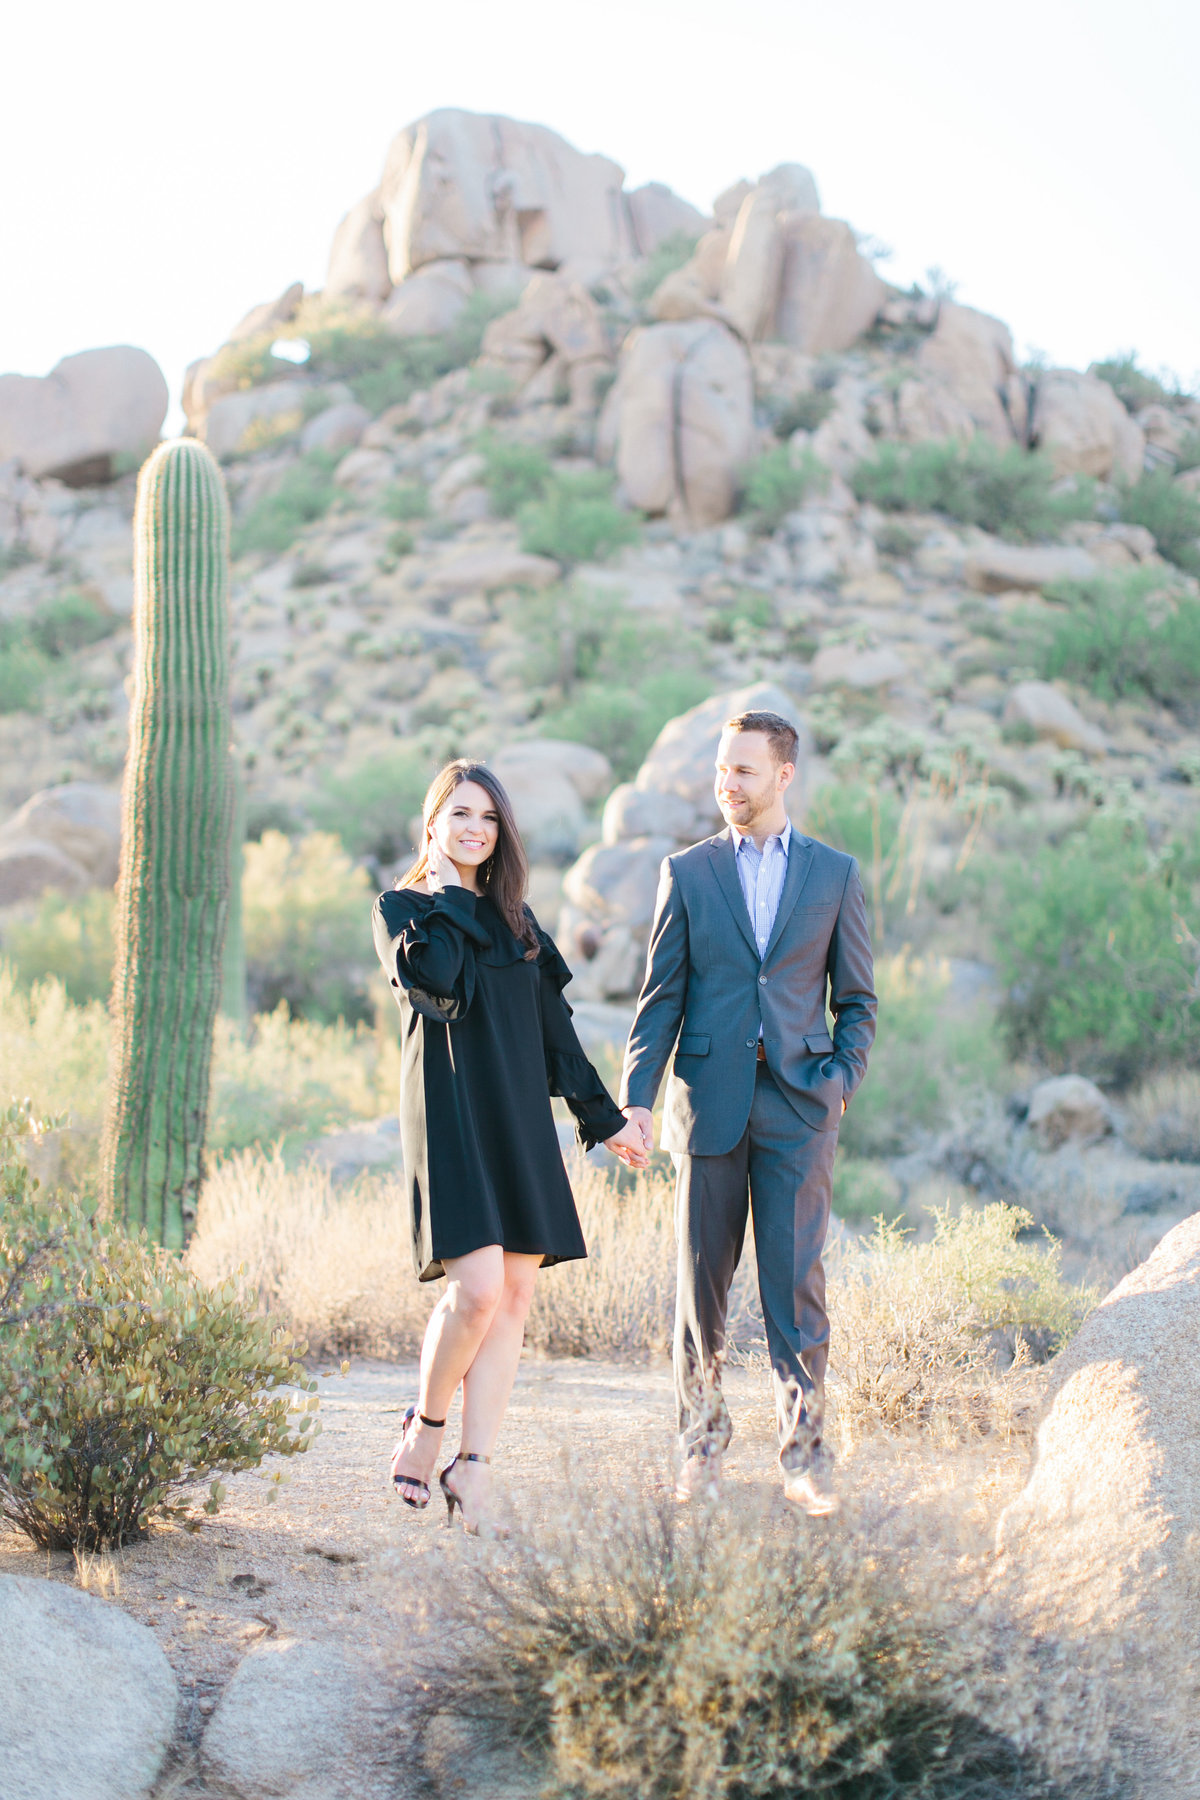 SellersEngagementWEBSITE-6